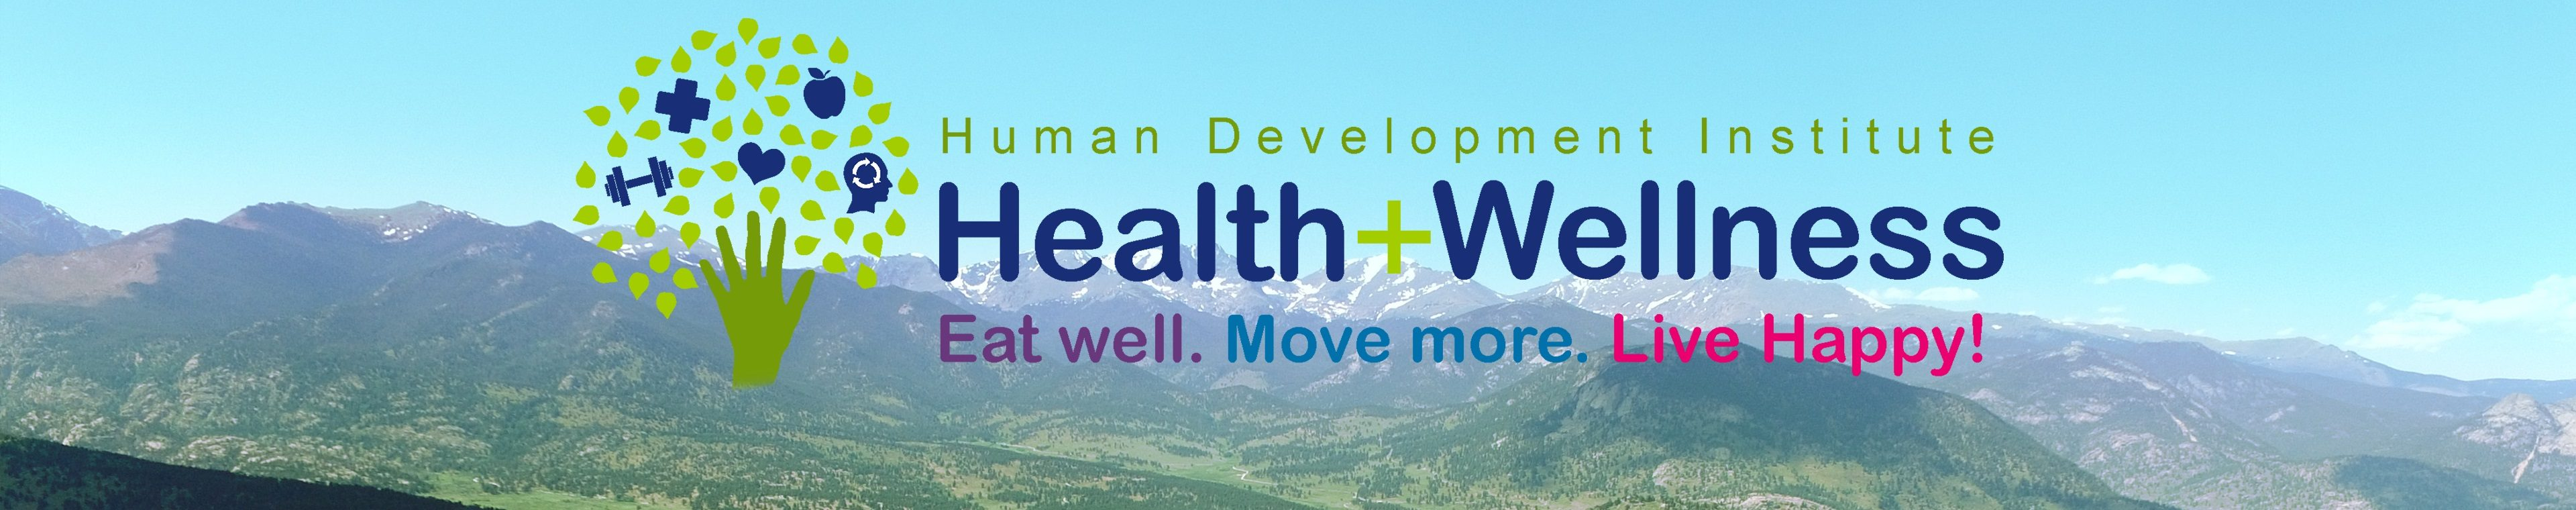 Health and Wellness header image with logo and mountains